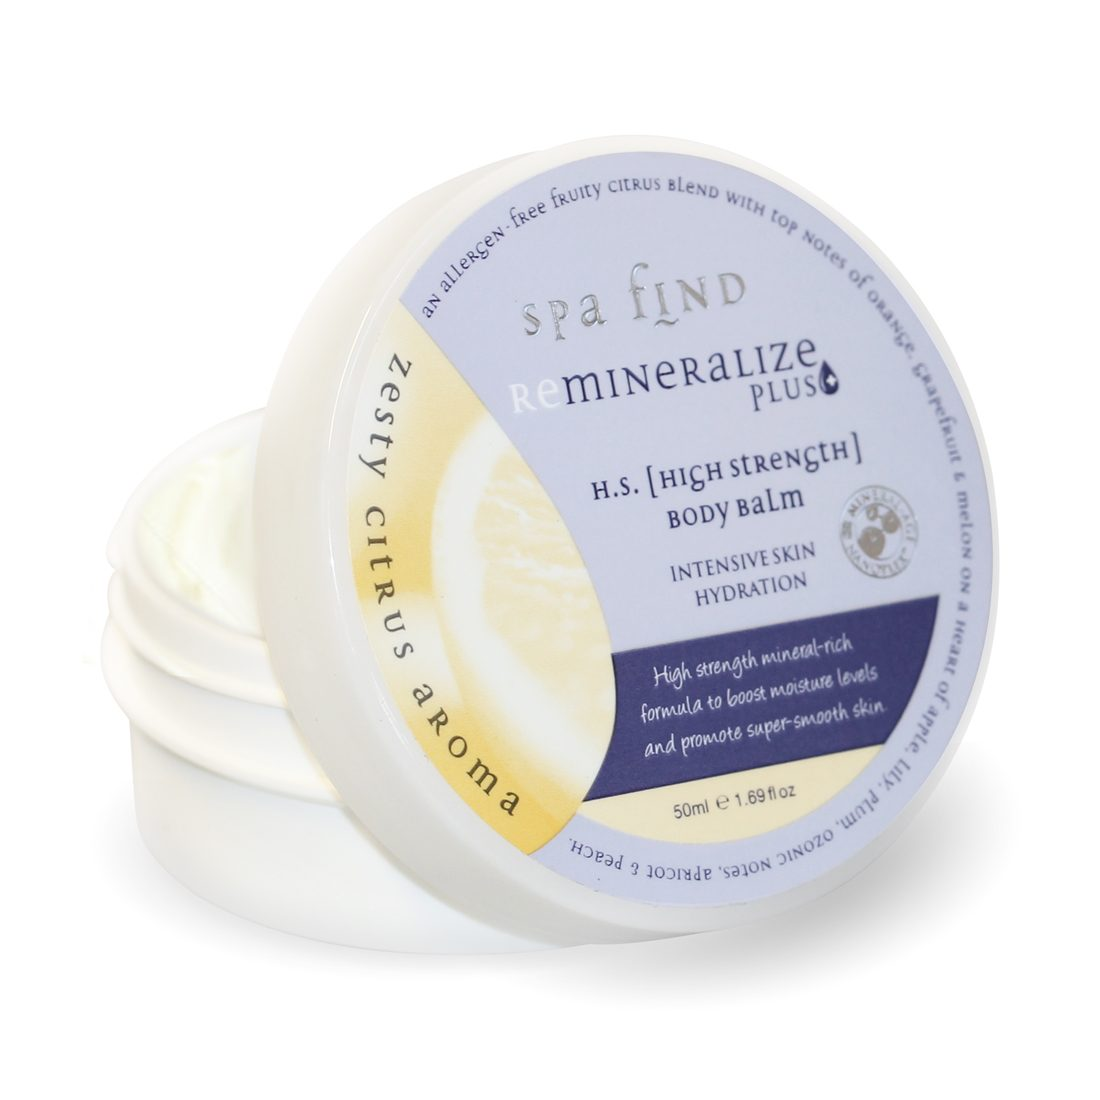 Spa find Remineralizing Body Balm